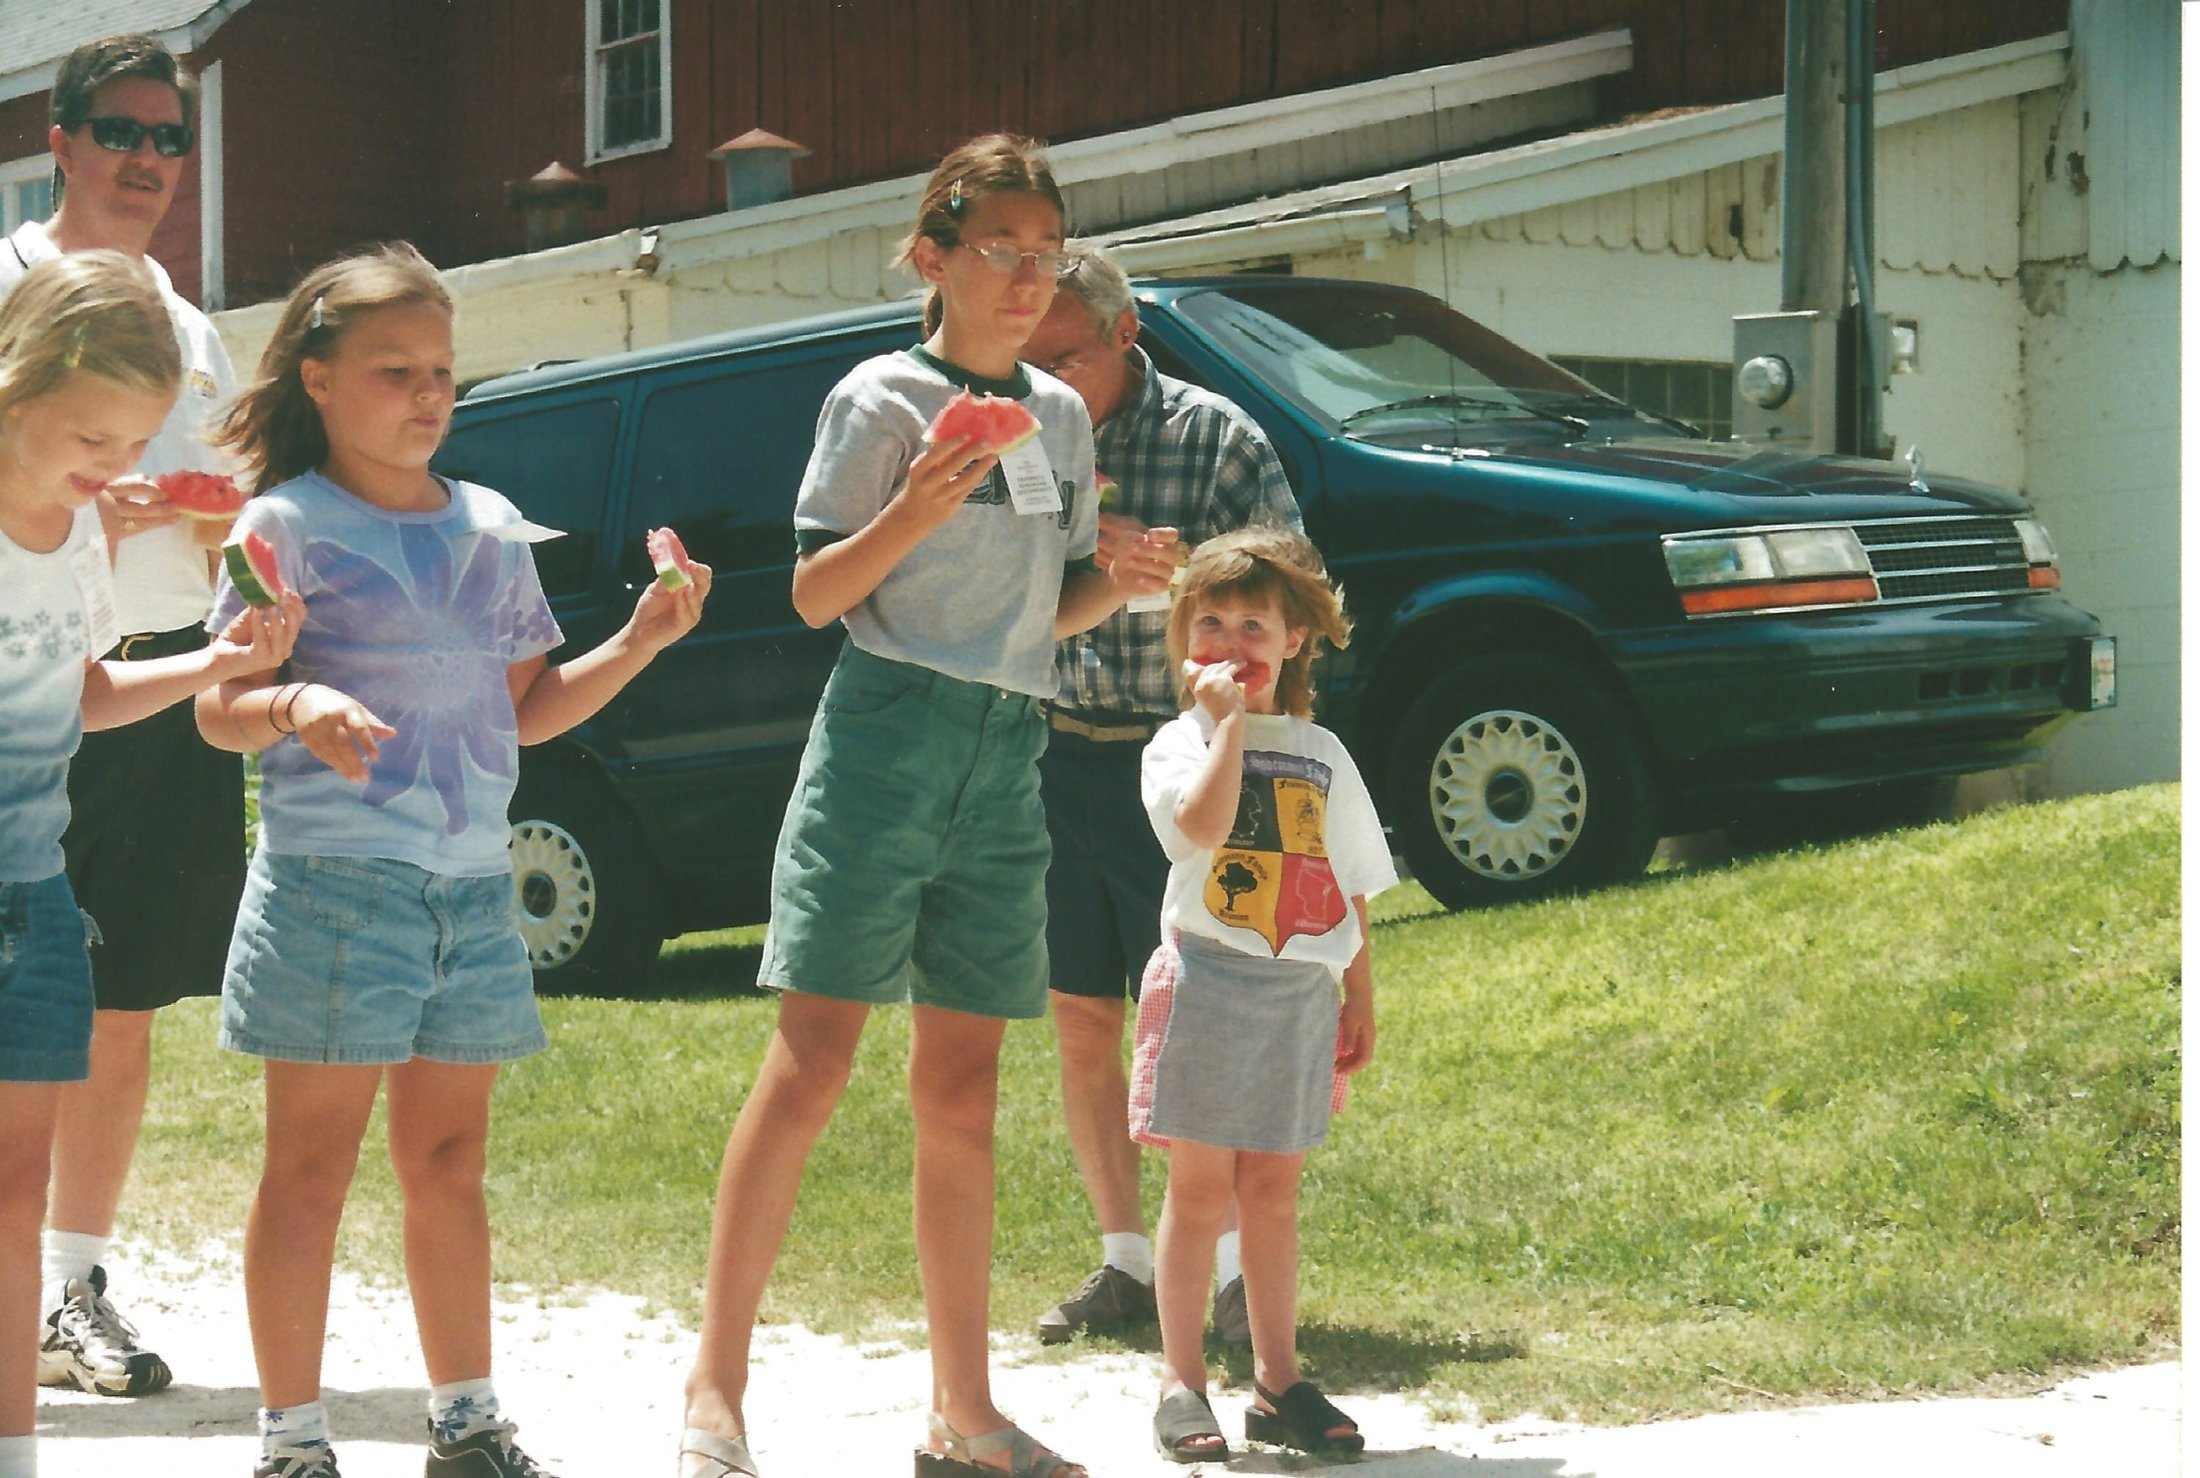 Watermelon Seed Spitting Contest - When Watermelon Still Had Seeds